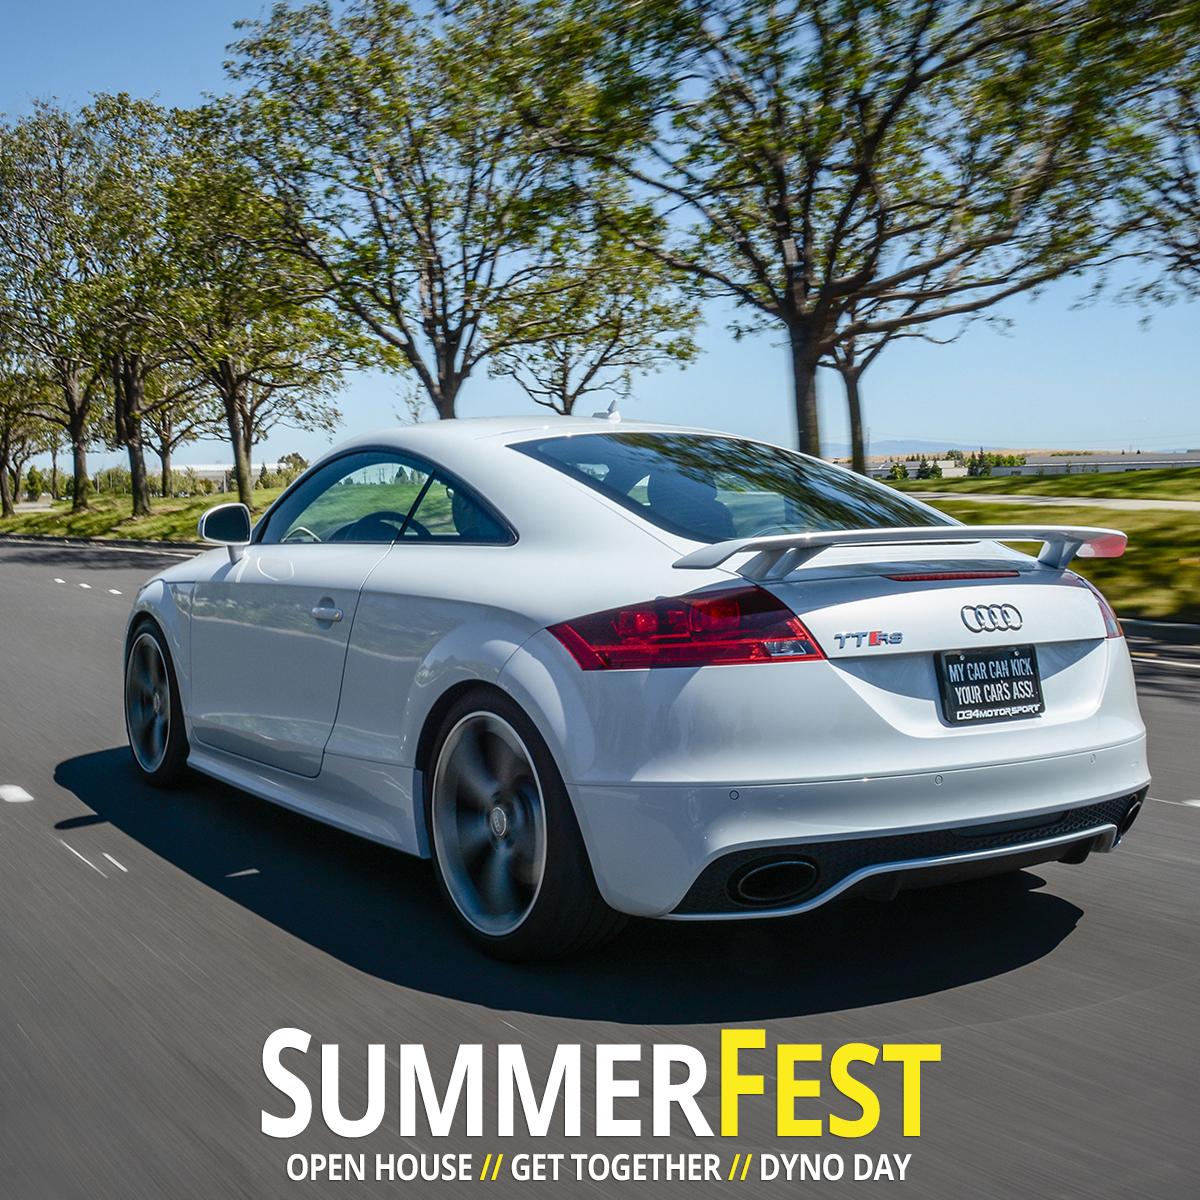 SummerFest 2017 by 034Motorsport